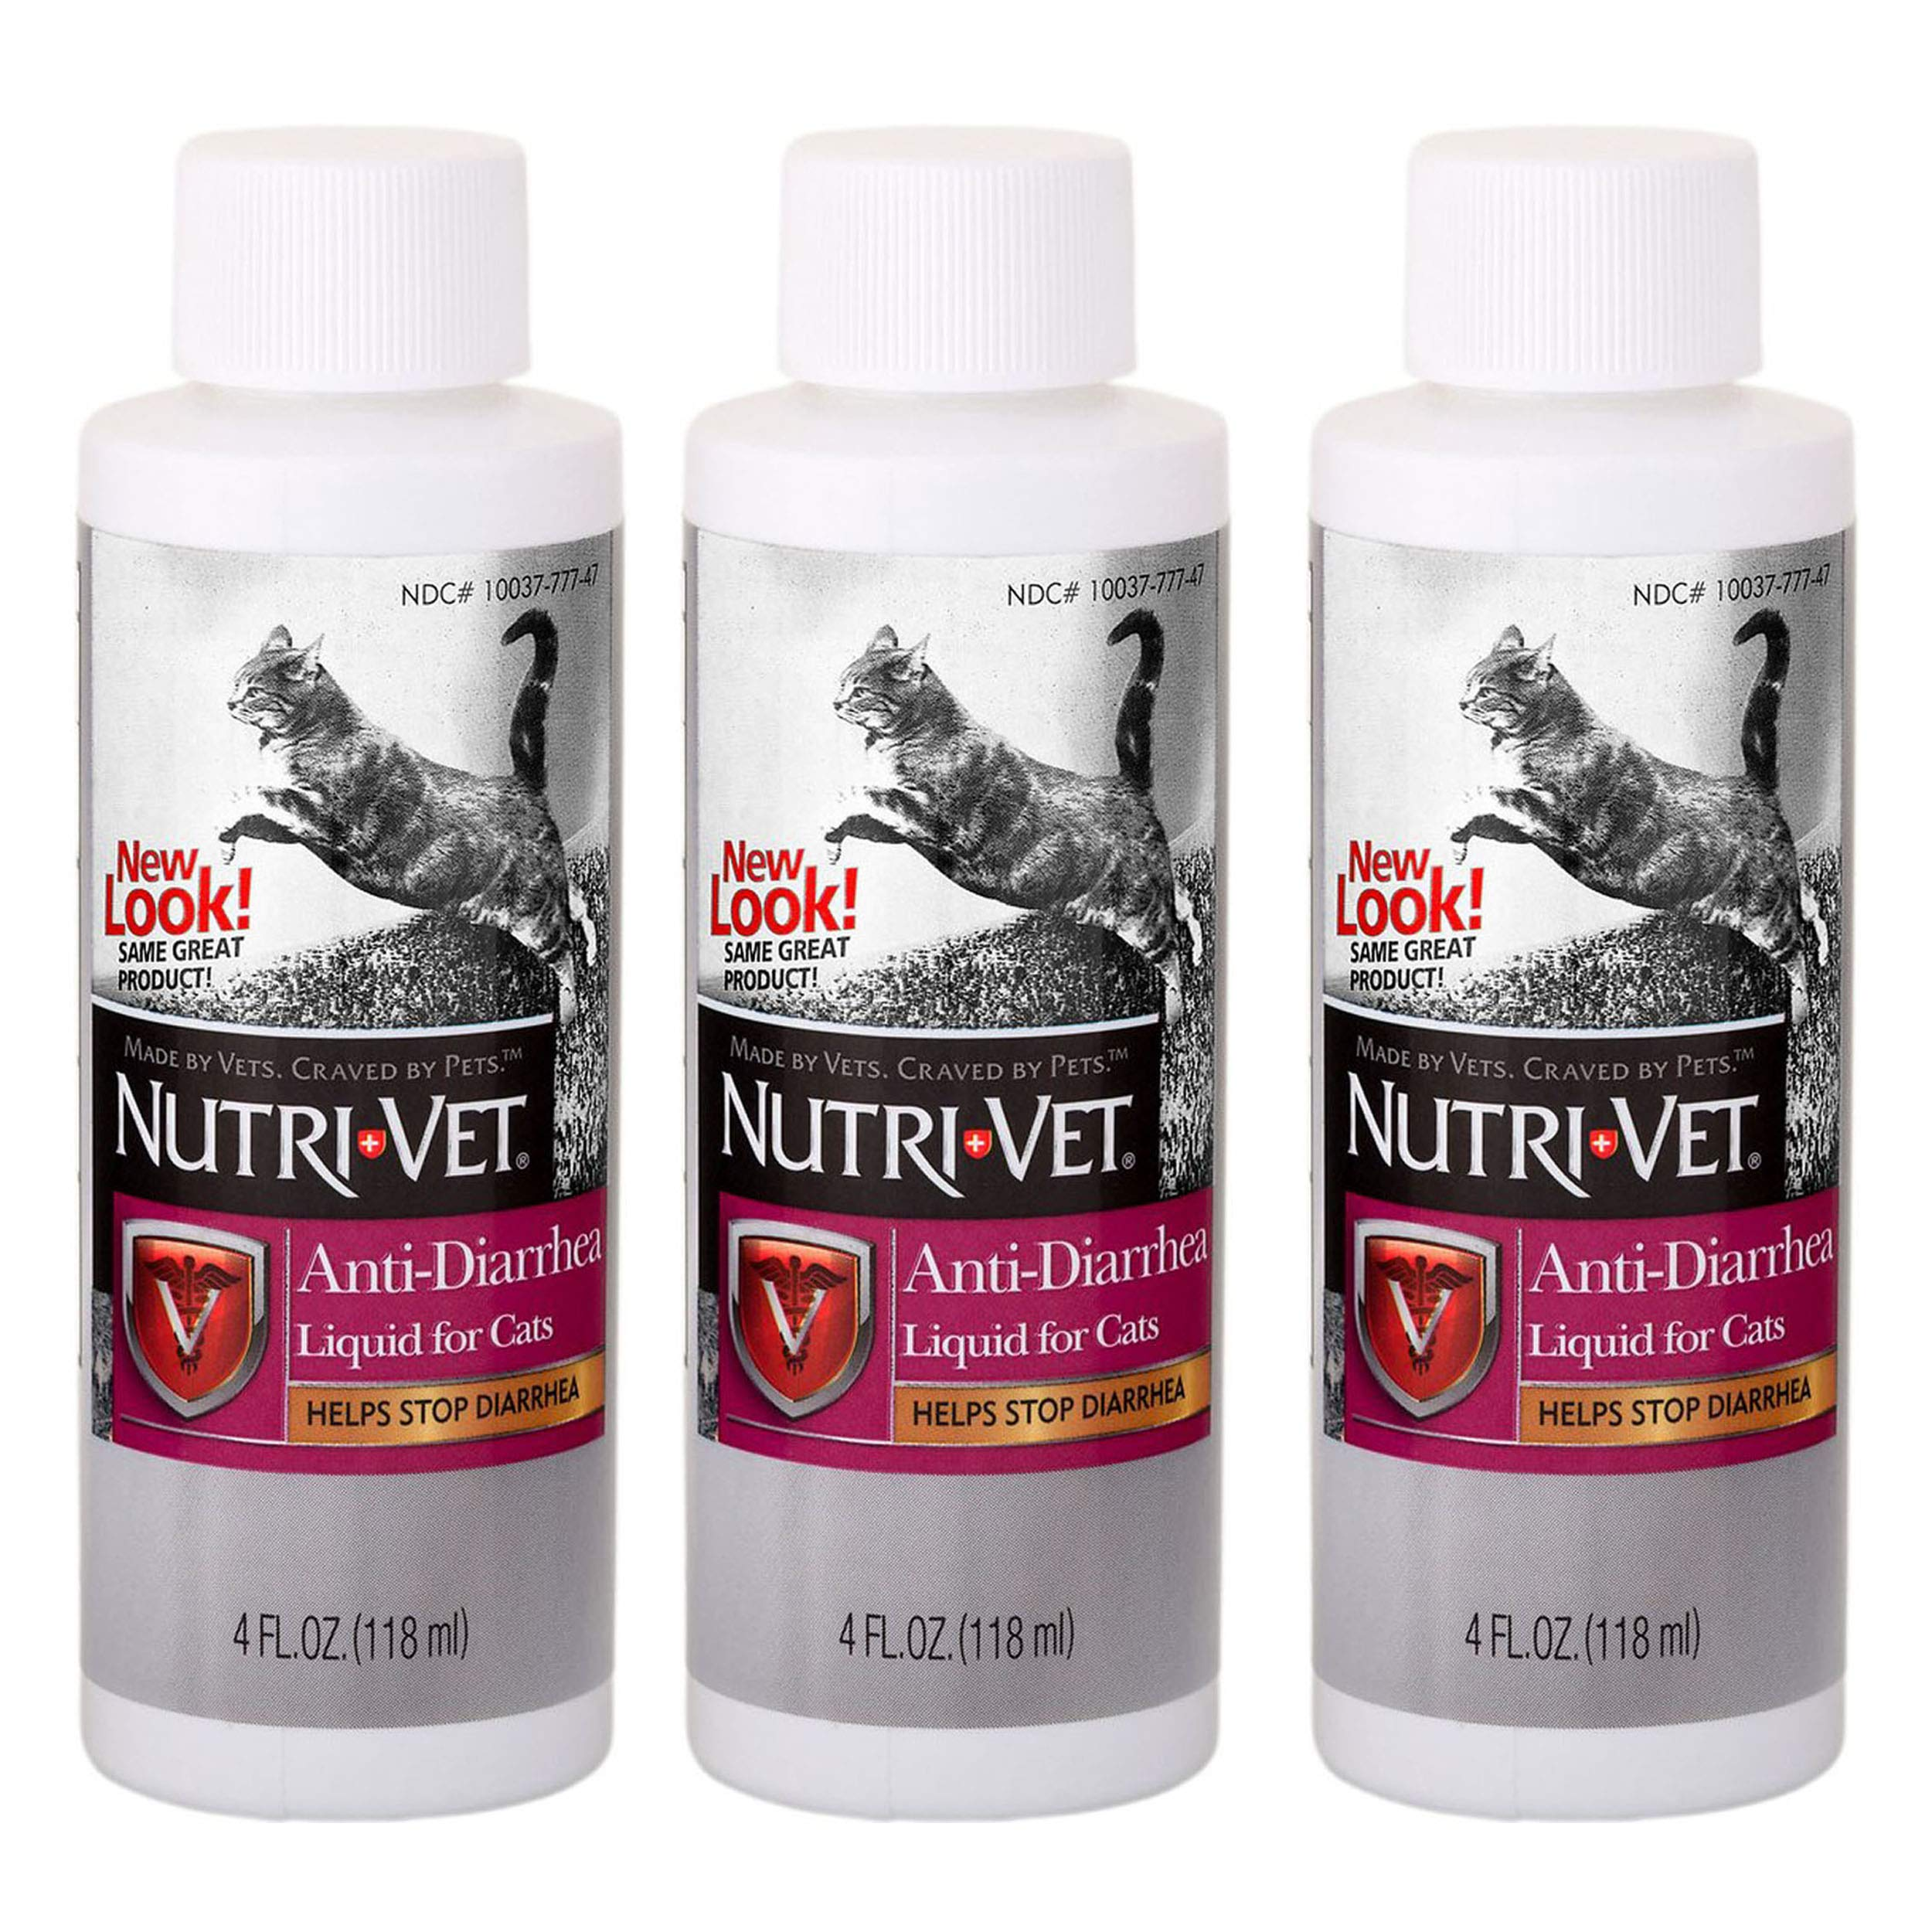 Cat Anti Diarrhea Liquid for Cats Helps Stop Diarrhea 3 Pack Total 12 oz Made in USA from Nutrivet by NutriVet Cat Anti Diarrhea (Image #1)